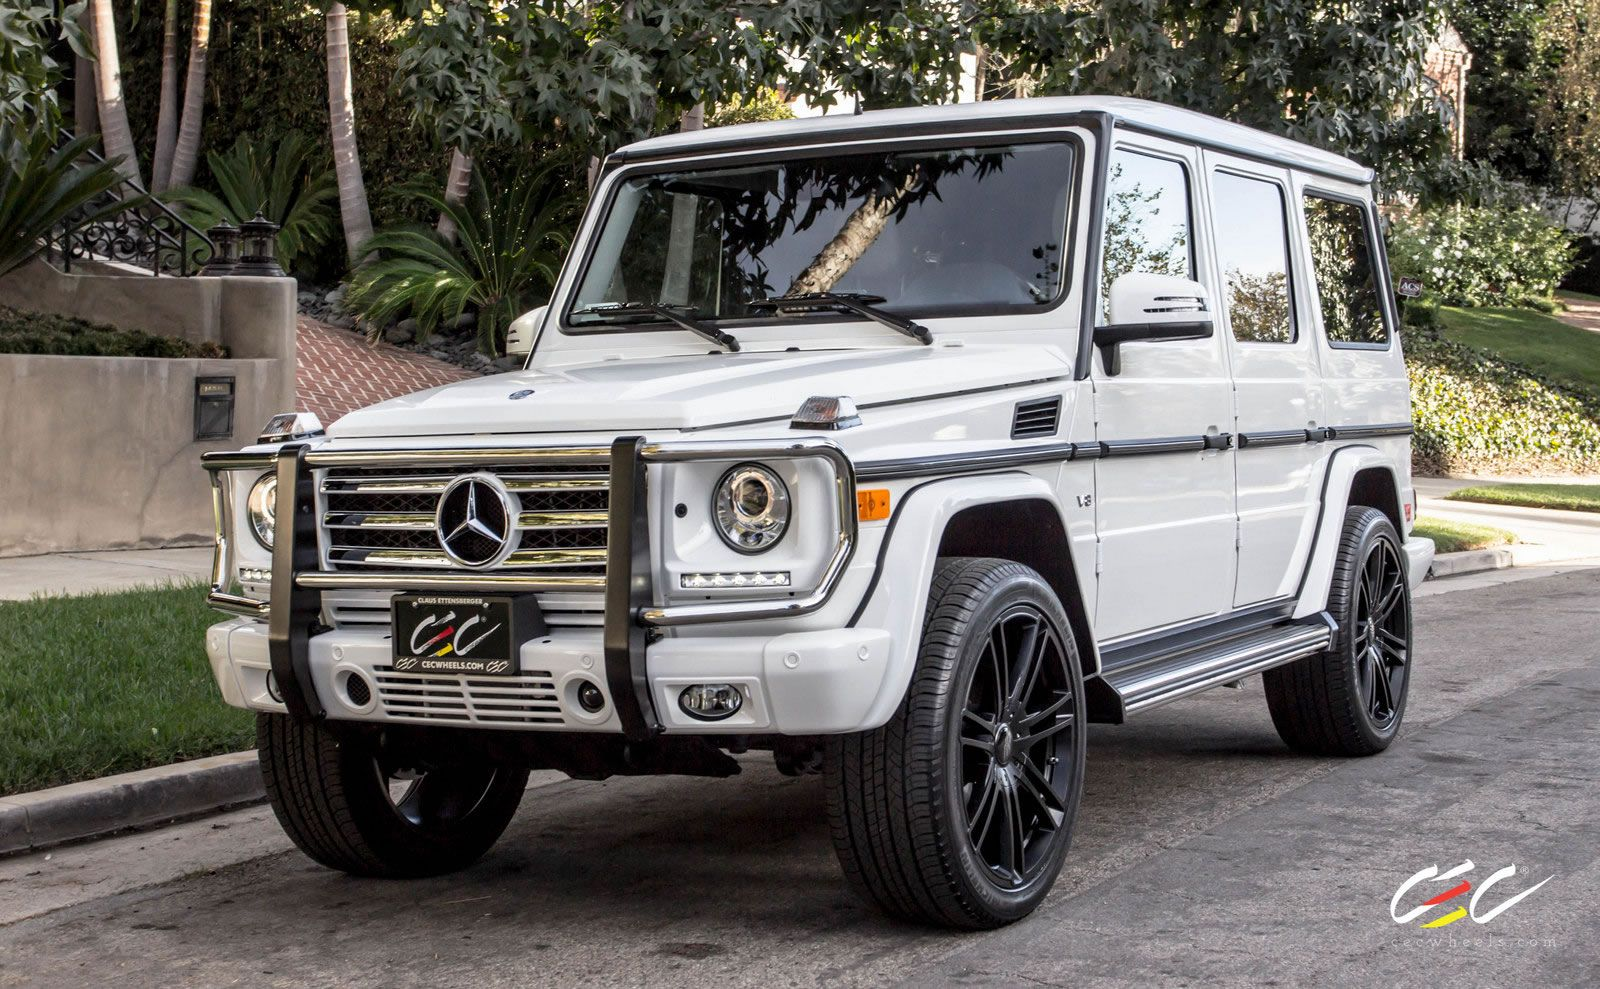 Mercedes Benz G550 With C883 Suv In Custom Matte Black Finish Cars